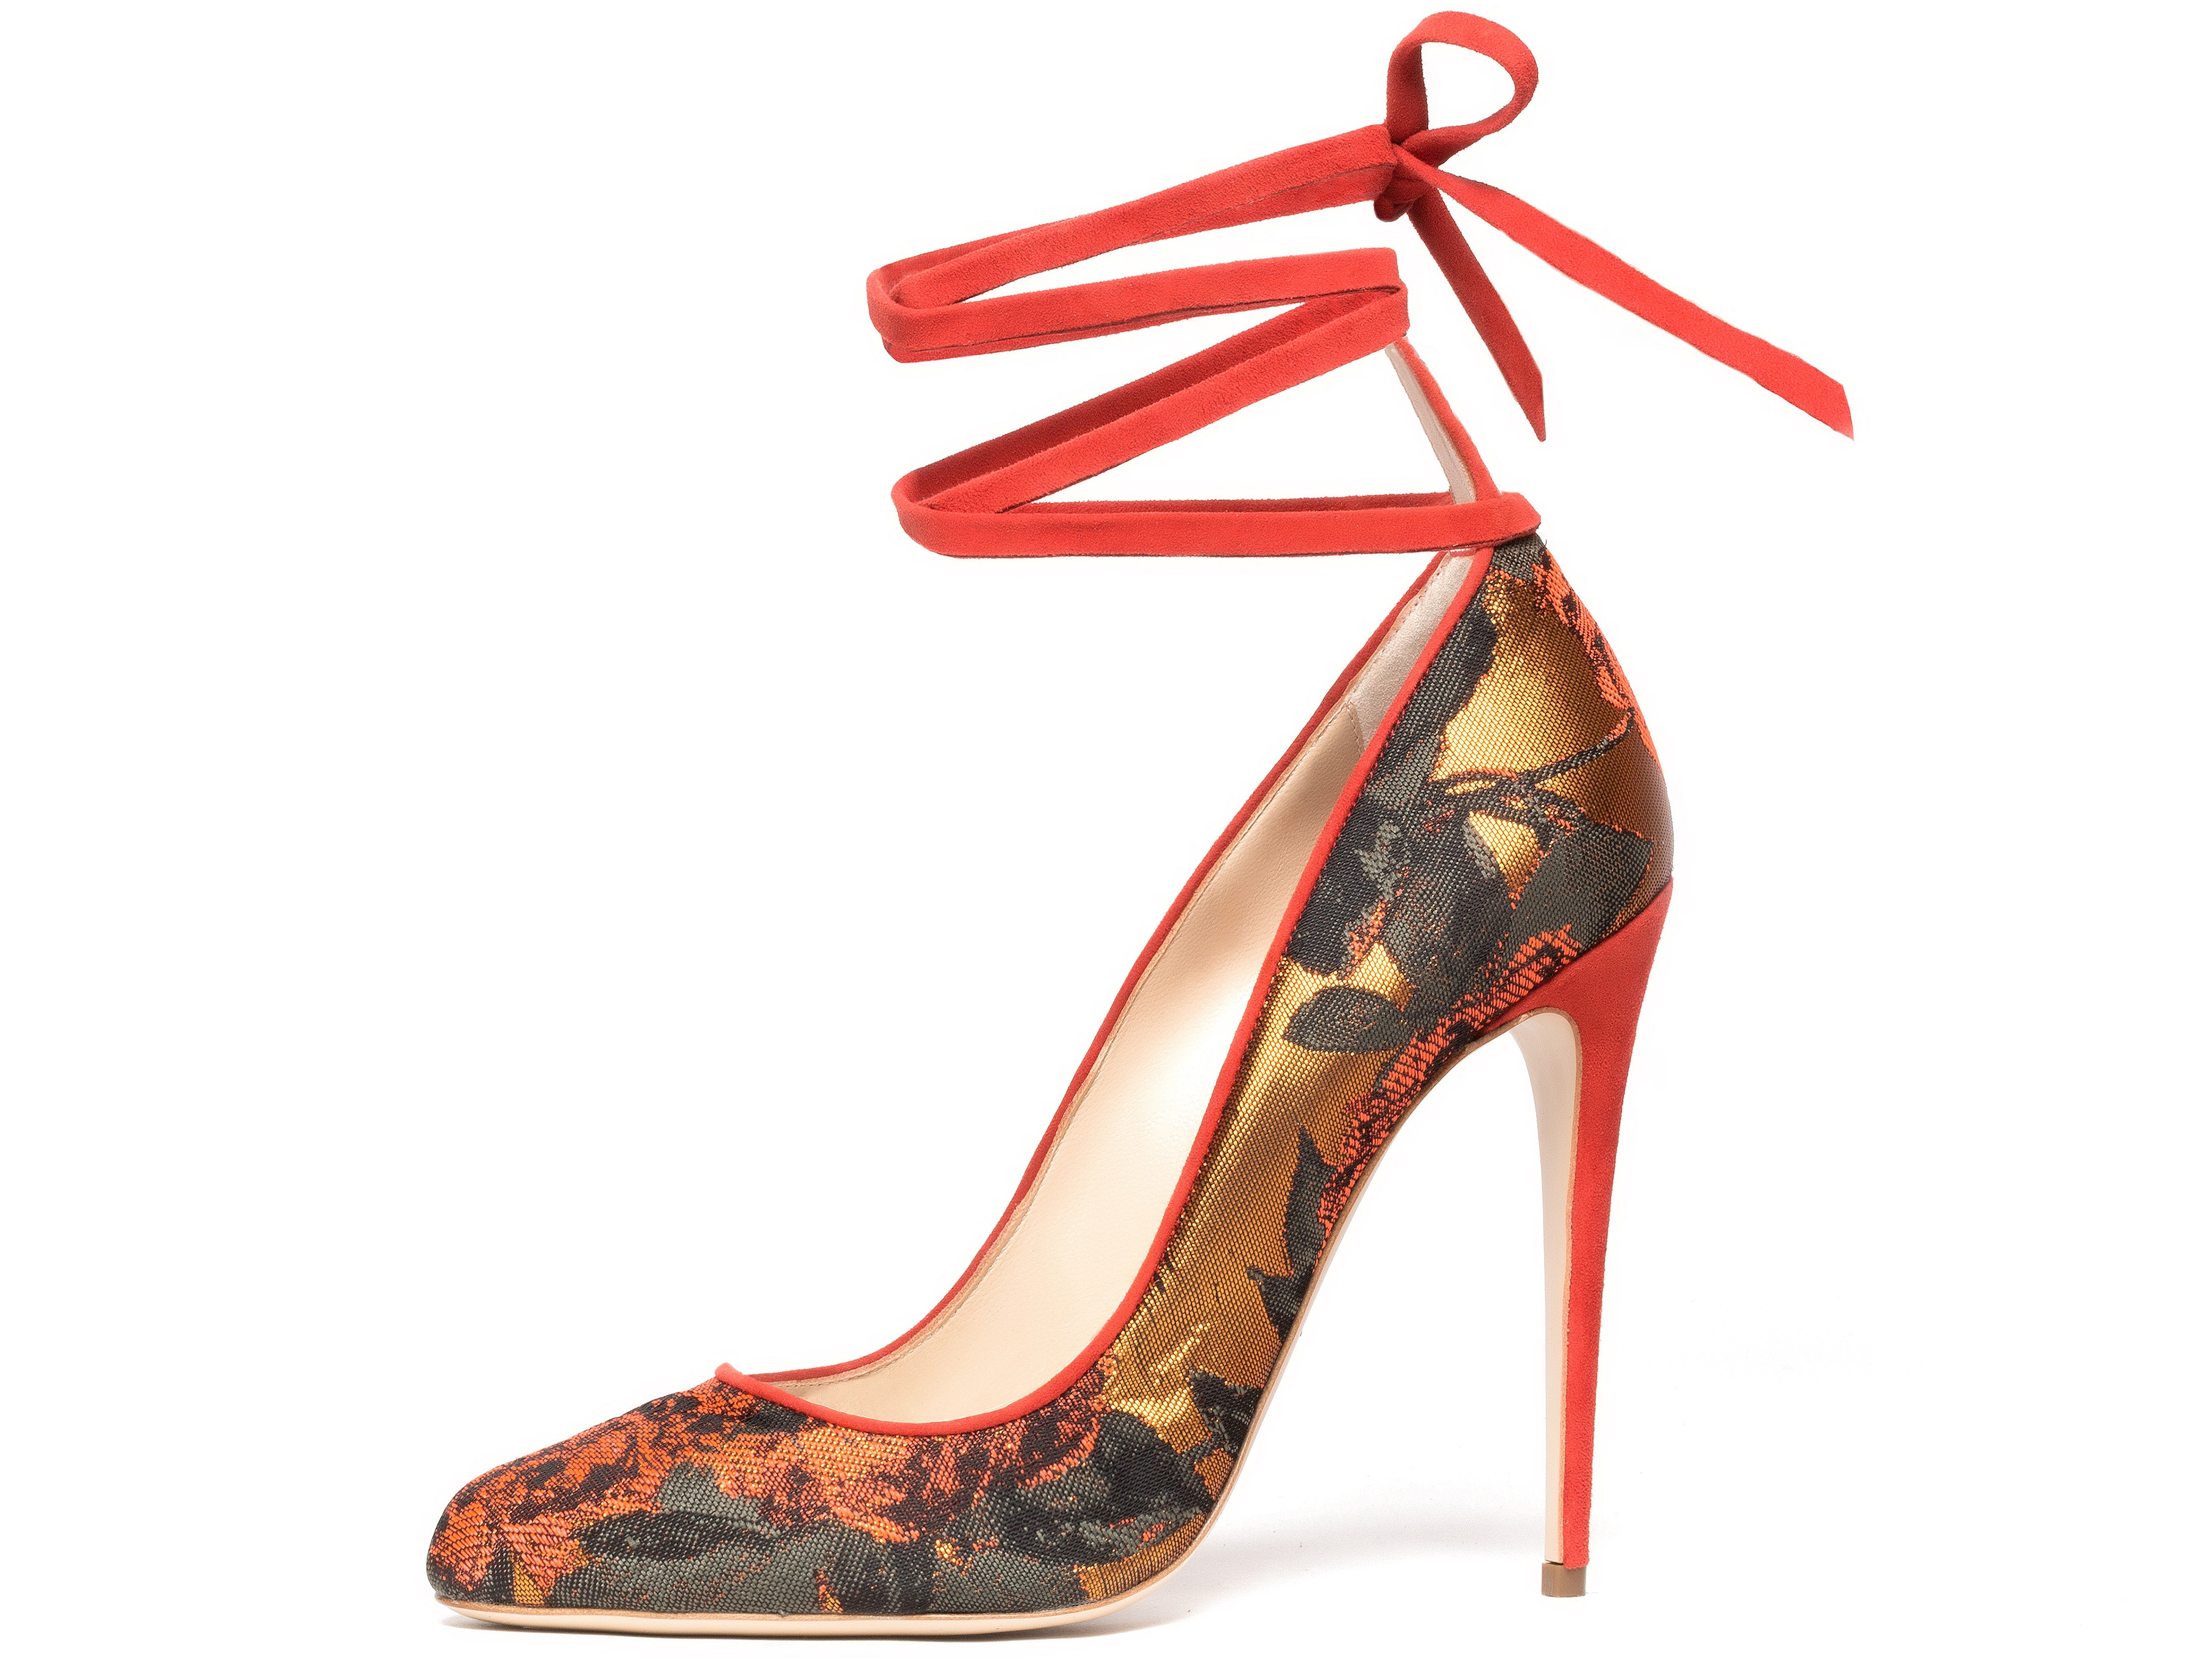 Paul Andrew stiletto with ankle lacing, Topkapi design in colorway Burnt Orange, Floral Lurex Jacquard.